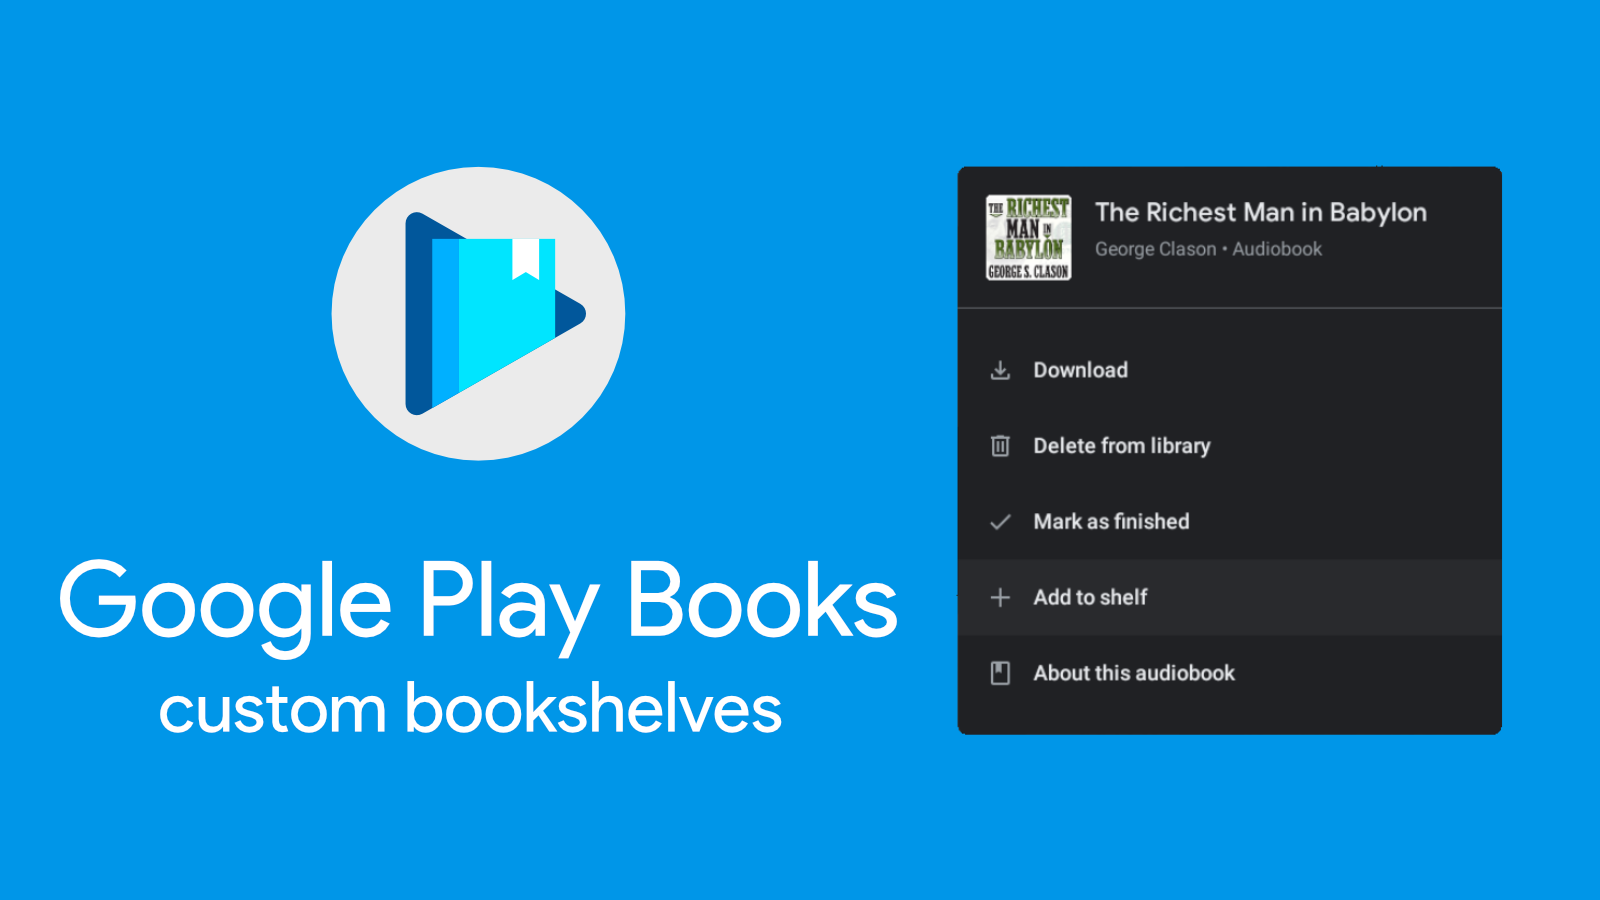 At long last, Google Play Books is bringing user-created bookshelves out of beta